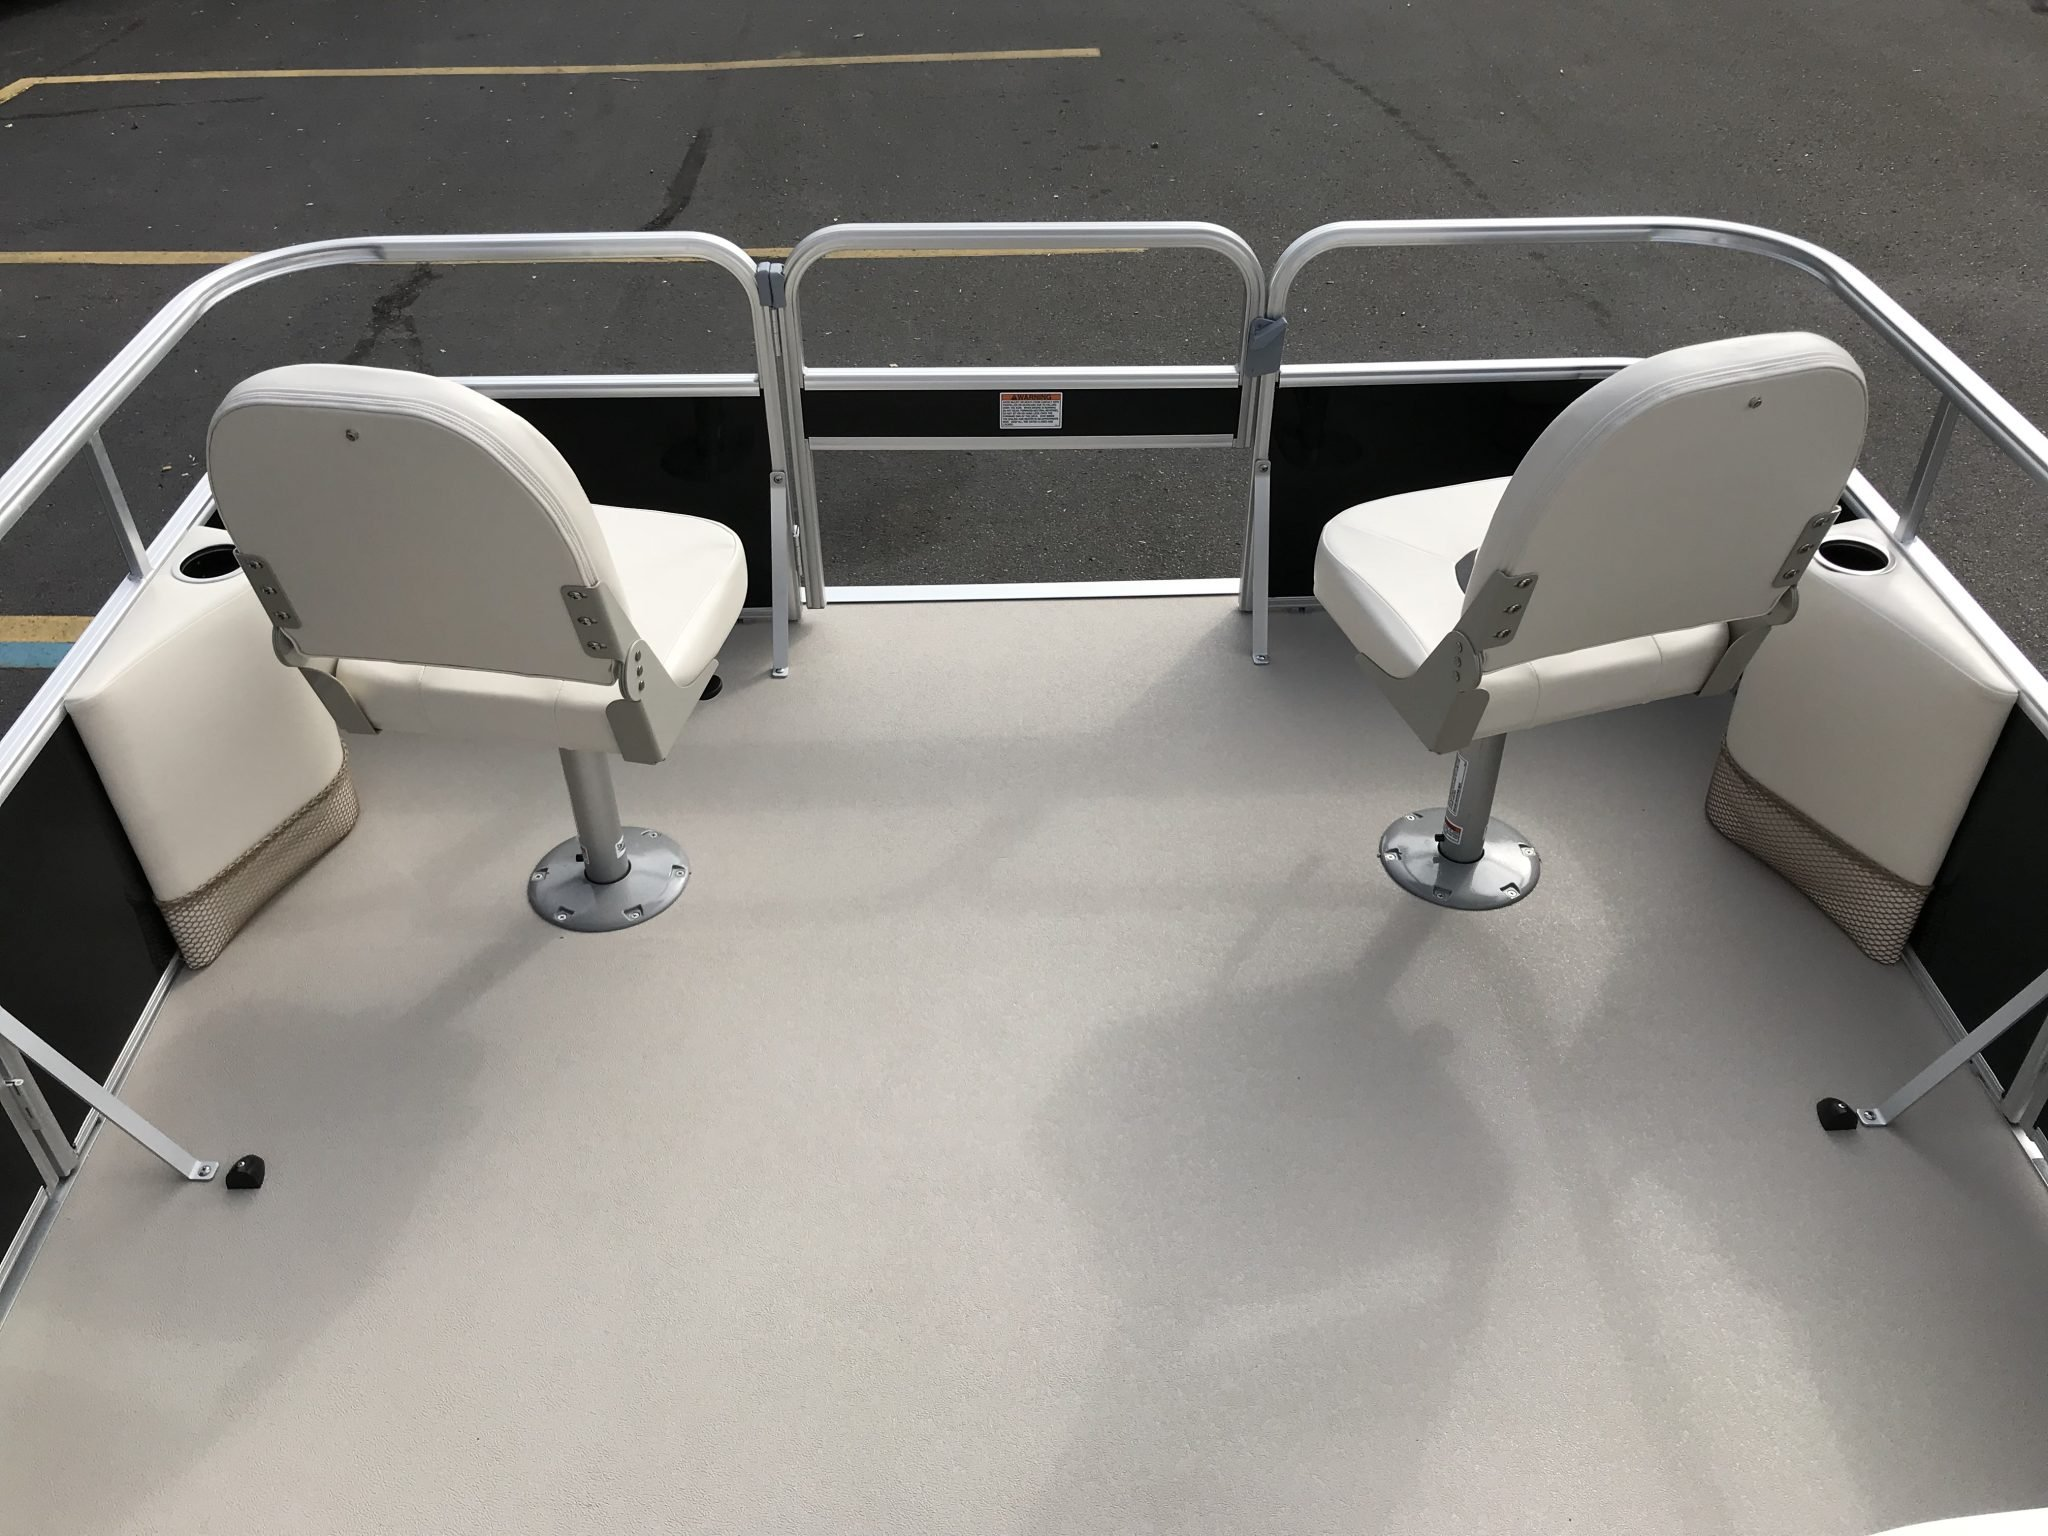 2019 SunChaser 818 4.0 Interior Bow Seating